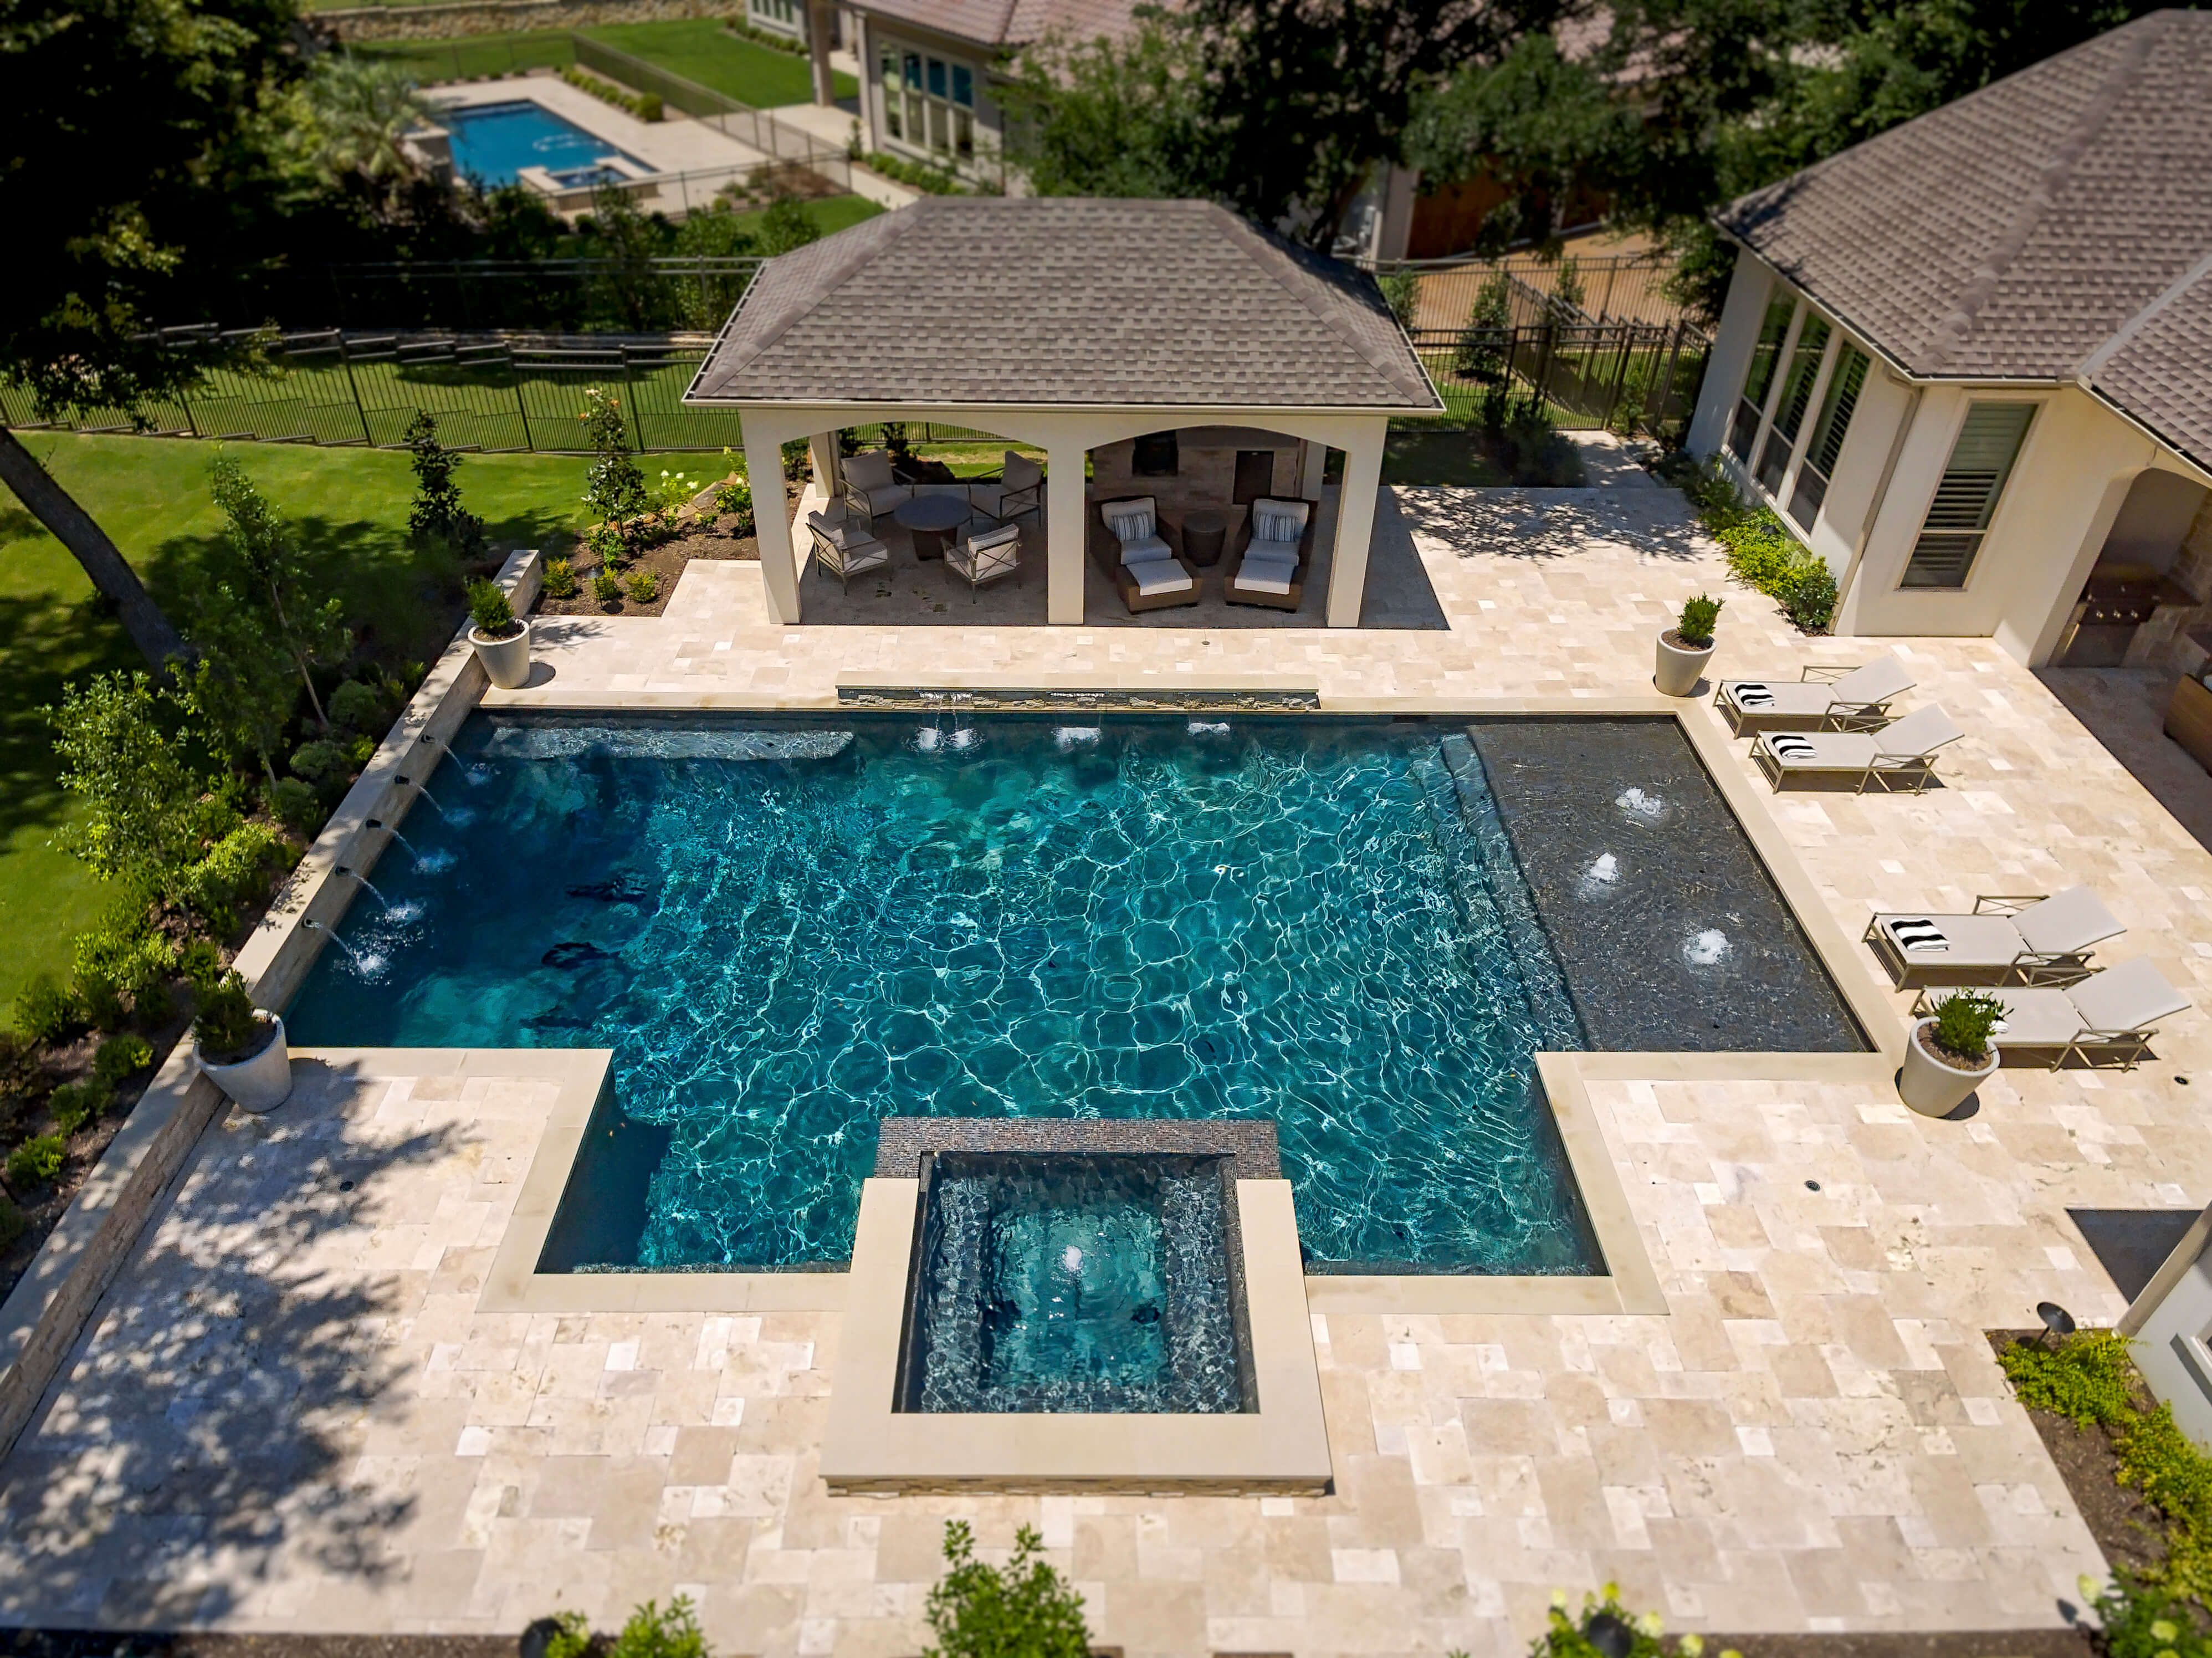 Riverbend Sandler Pools 4016 W Plano Parkway Plano Texas 75093